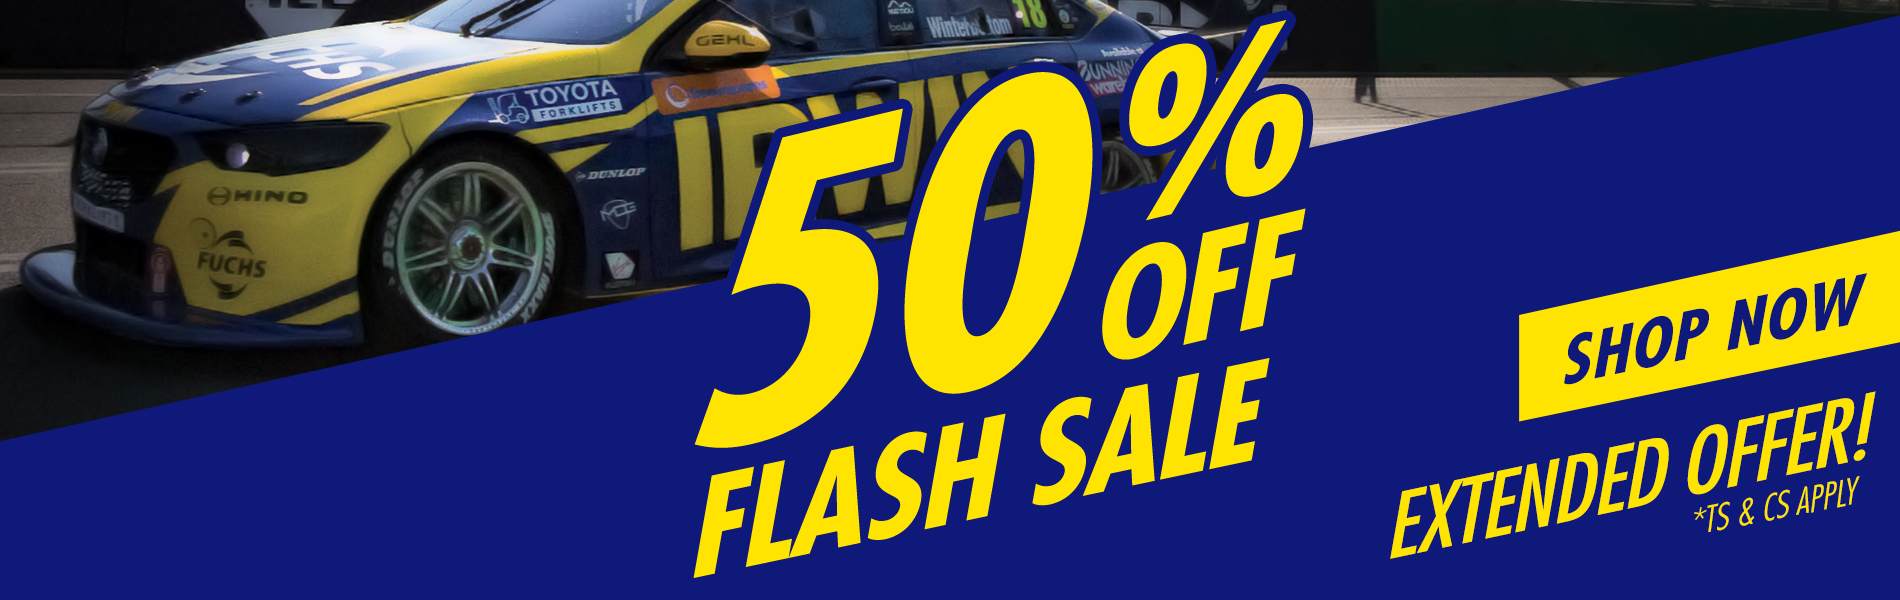 IRWIN-50-Off-flash-sale-polos-and-jackets_2ND